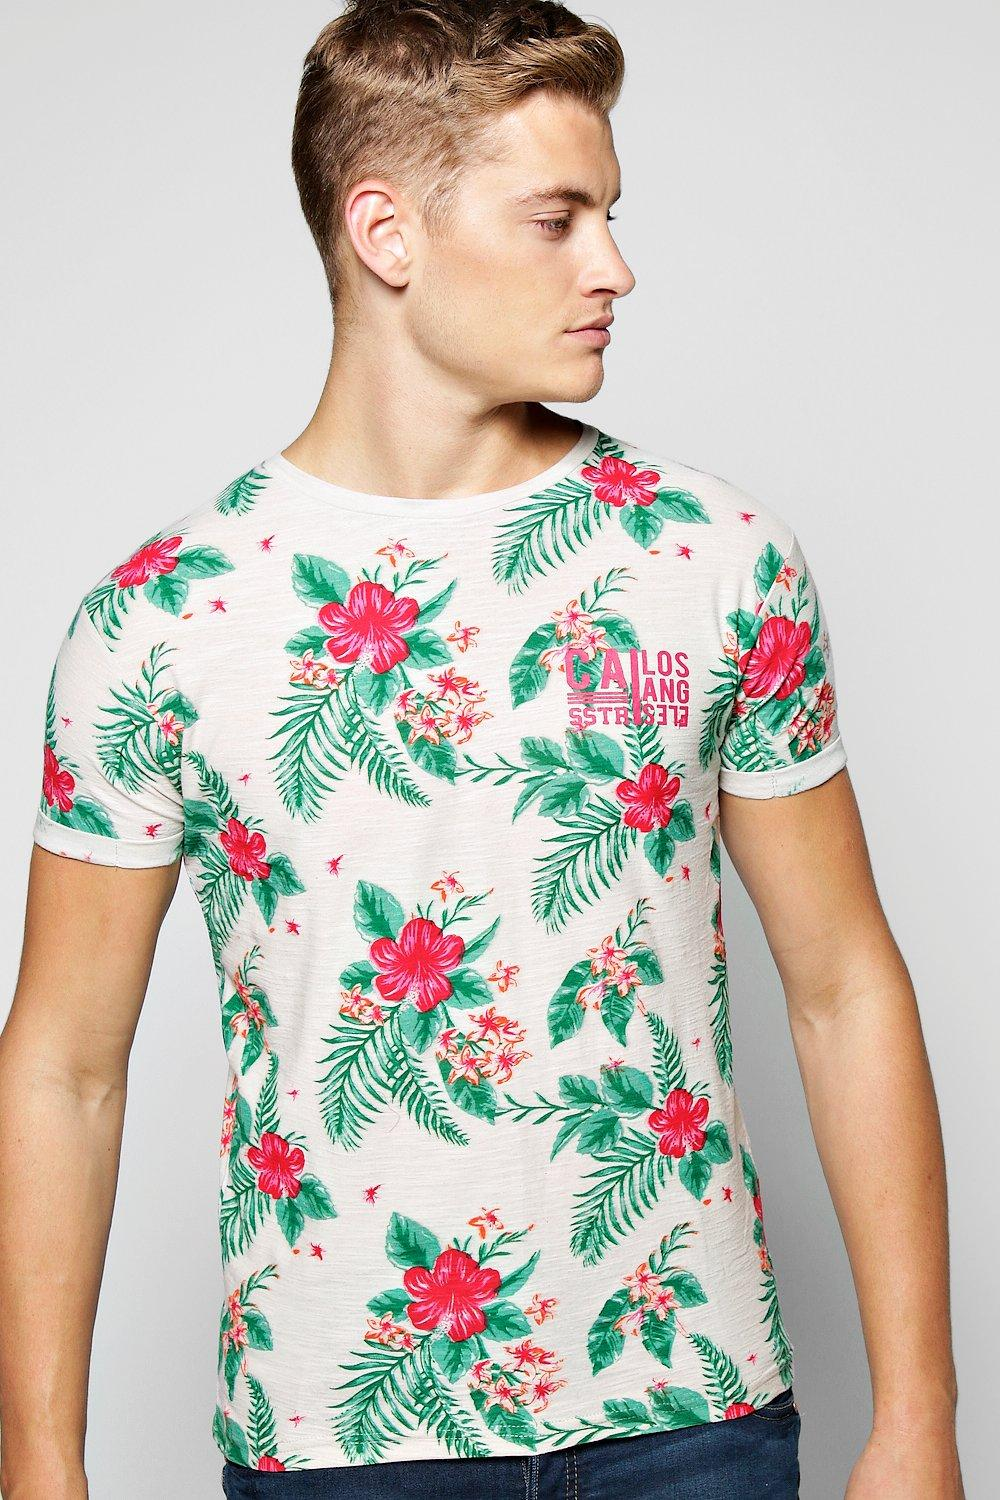 All Over Floral Print T Shirt